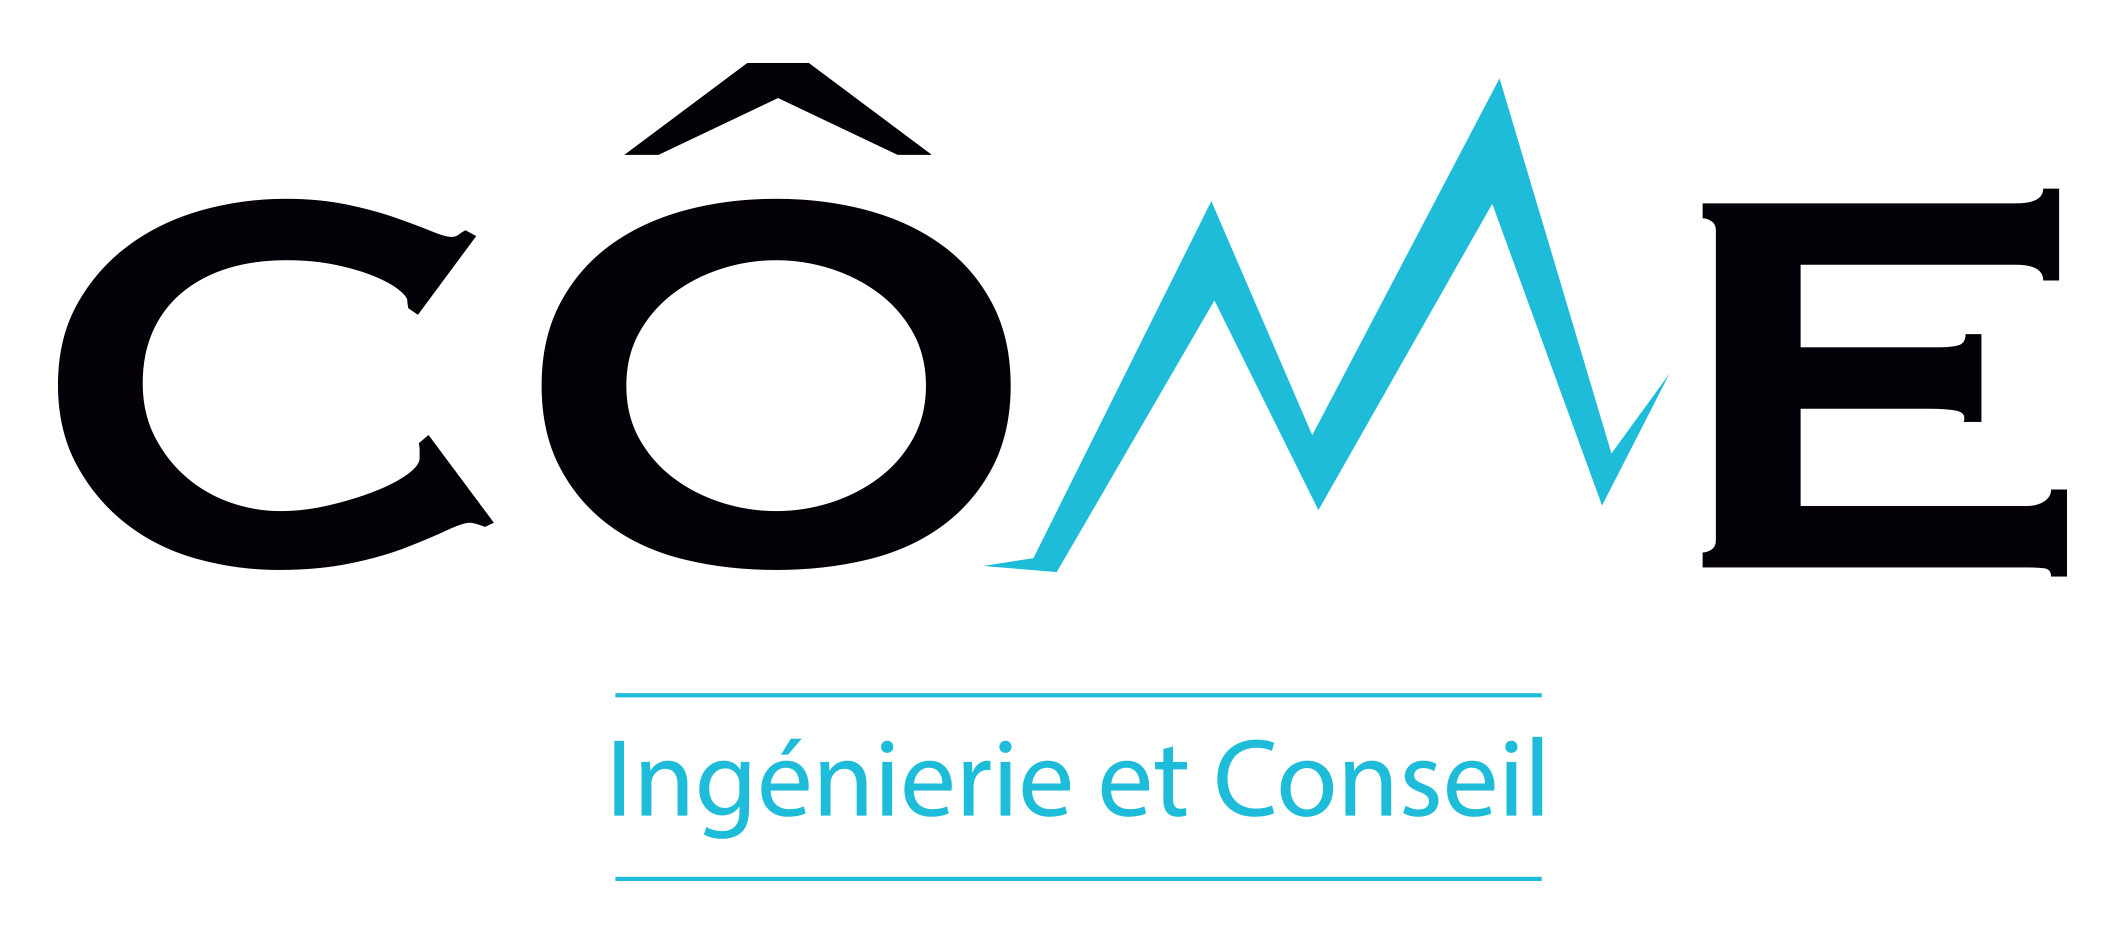 CÔME - Facilities, site du Facility management